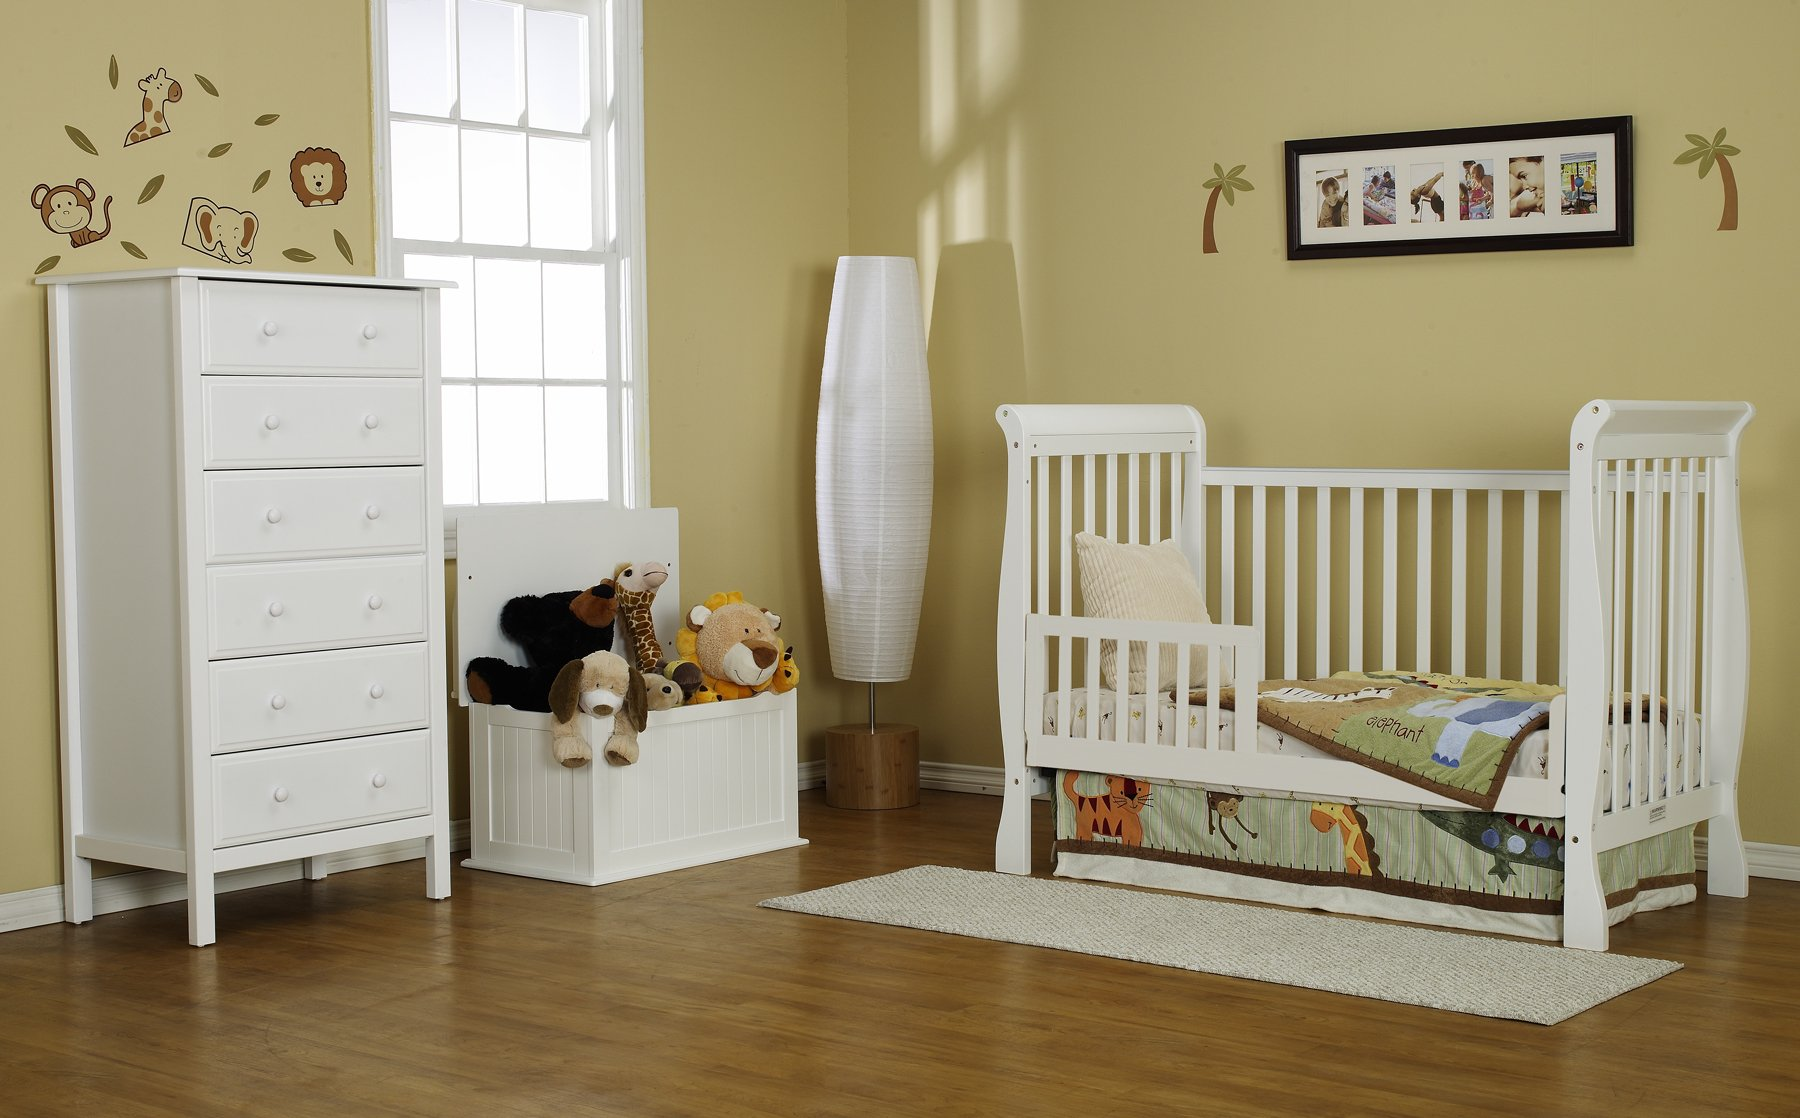 DaVinci Toddler Bed Conversion Kit, White by DaVinci